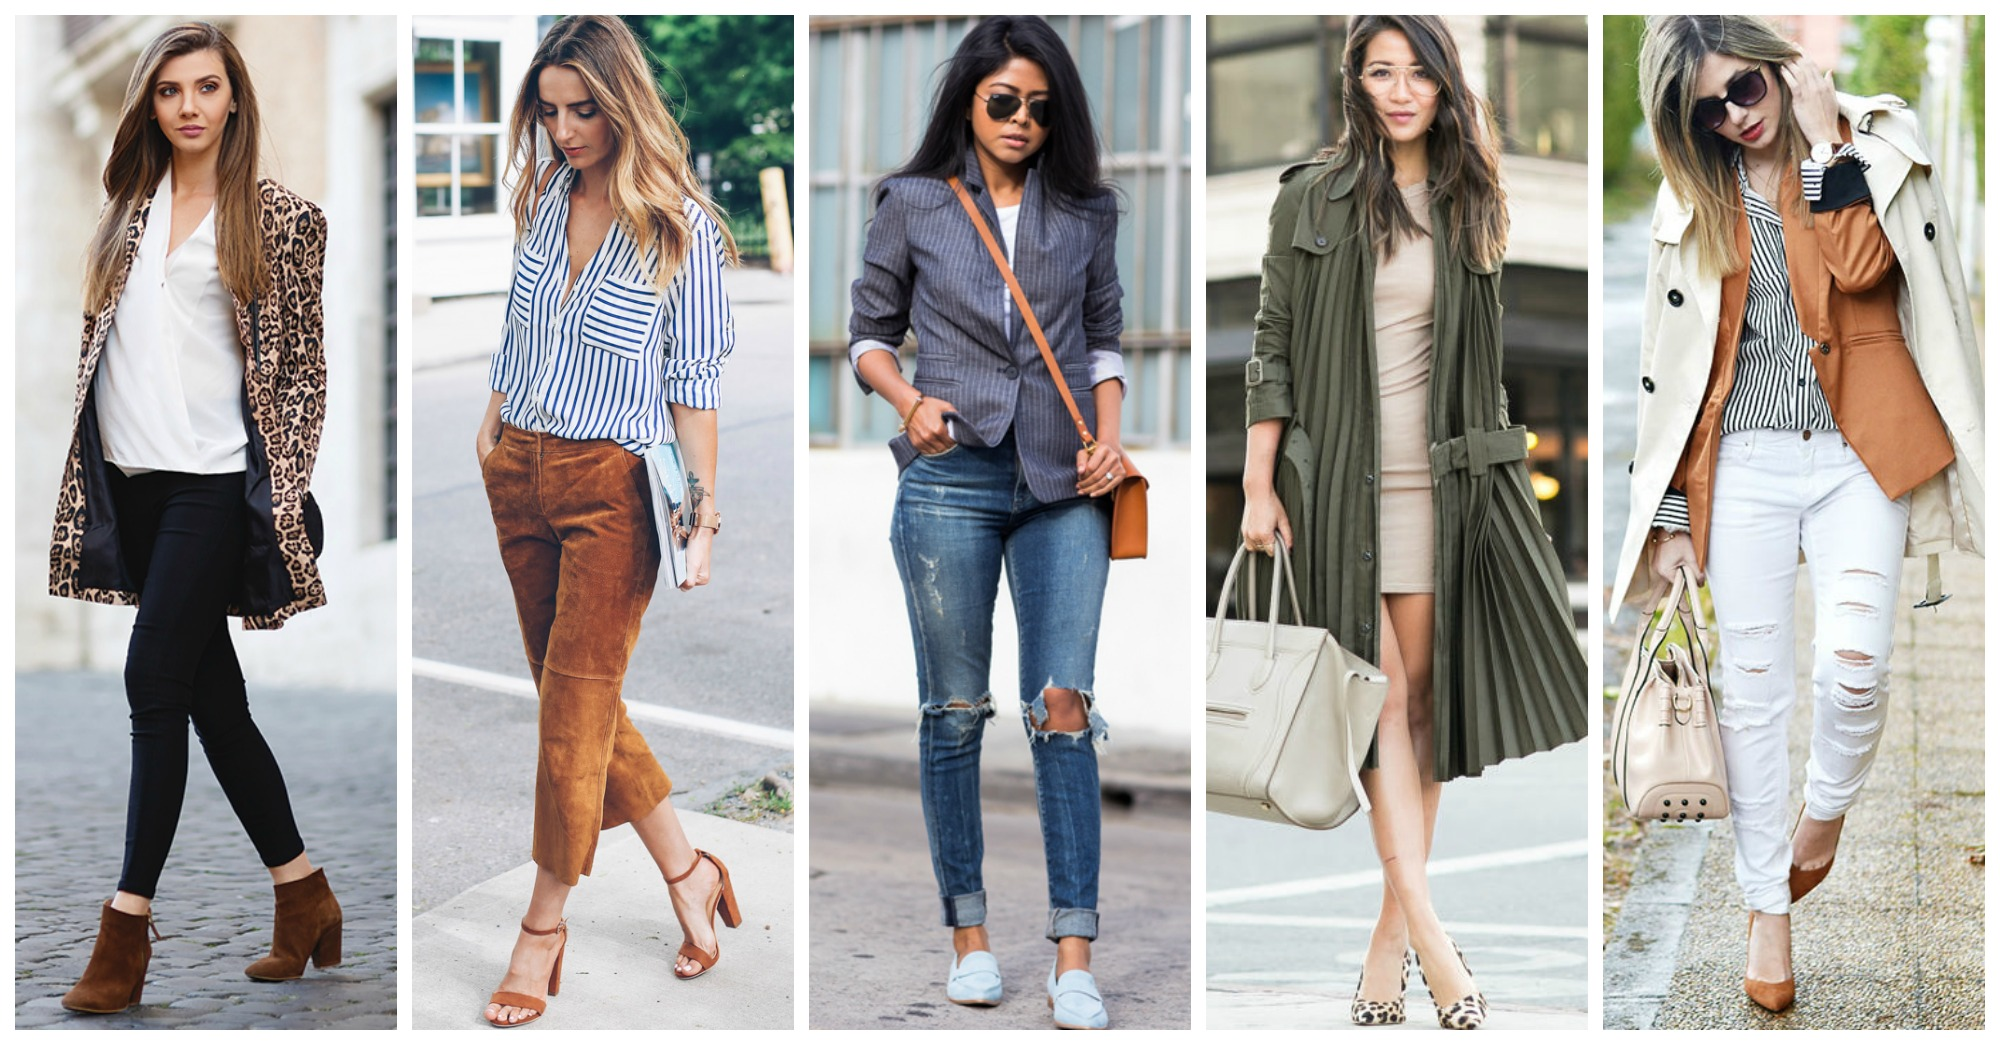 20 Outfits with Suede Shoes for Fabulous Pre-Fall Look